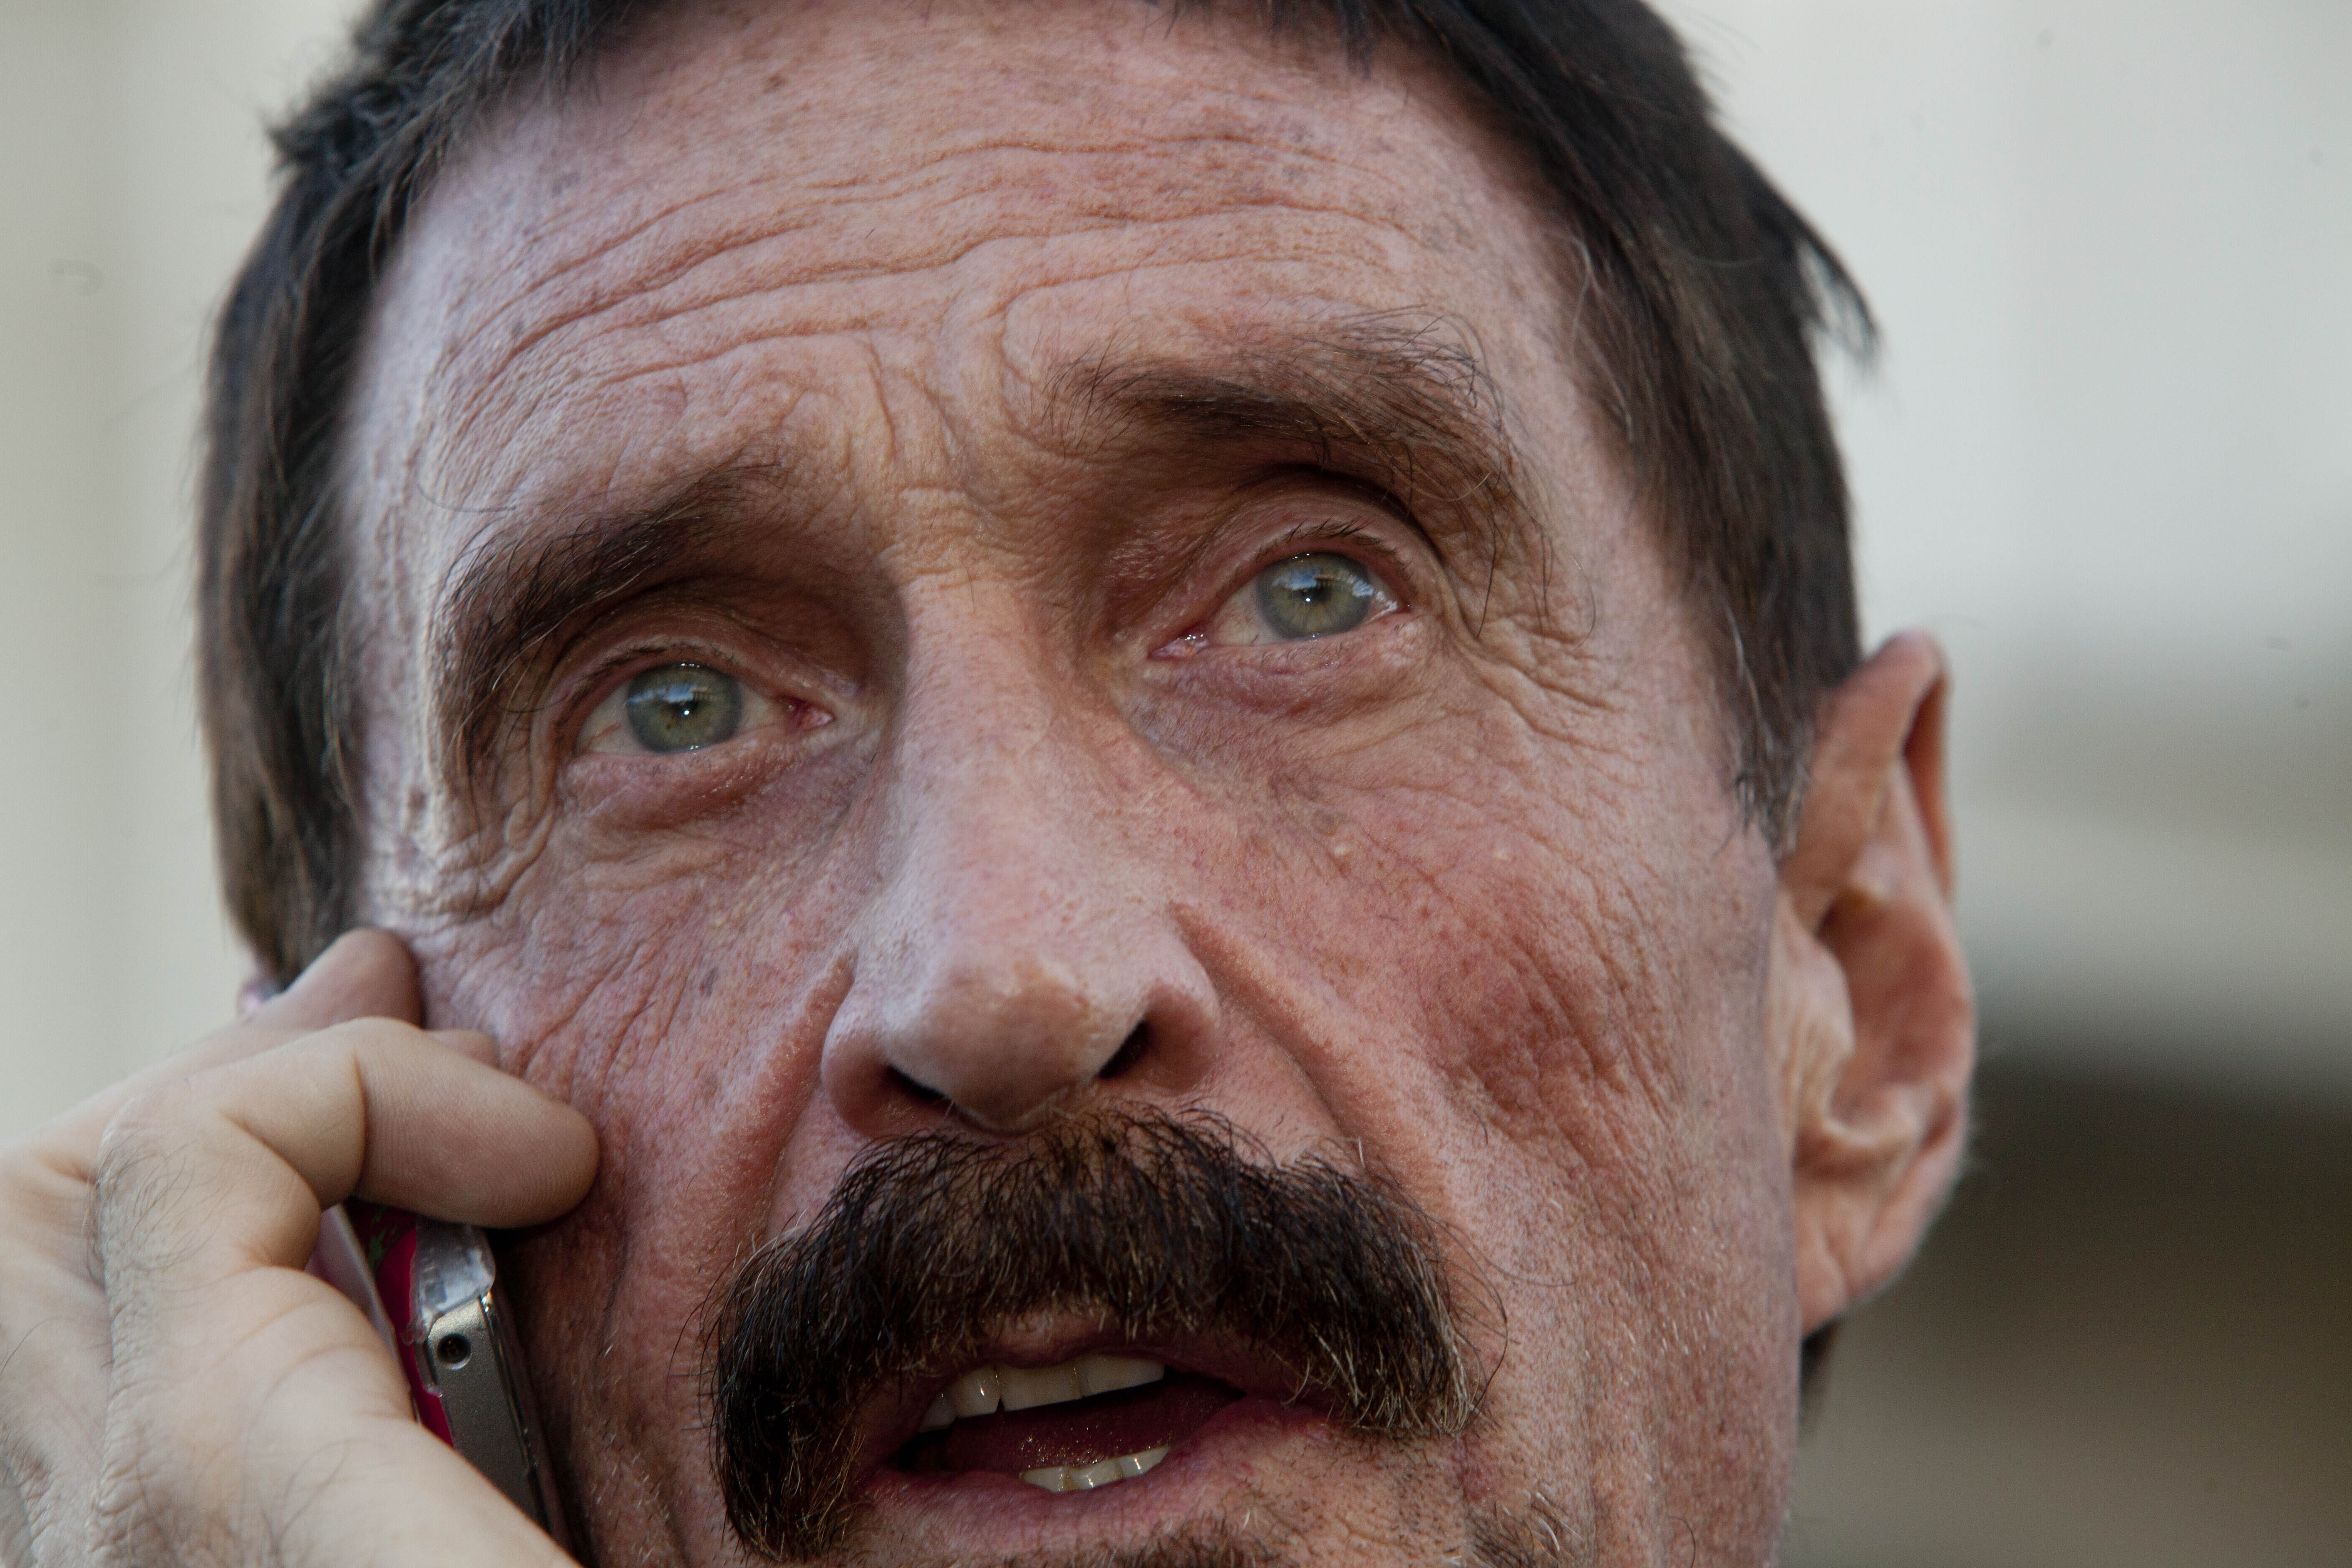 Westlake Legal Group b6bb1905-John-McAfee-in-Guatemala-2 John McAfee released after being detained in the Dominican Republic James Rogers fox-news/world/world-regions/dominican-republic fox-news/world fox-news/tech/topics/software fox-news/tech/topics/security fox-news/tech/topics/hackers fox news fnc/tech fnc article 13d42fc7-e538-559c-adb5-463cca5cb007